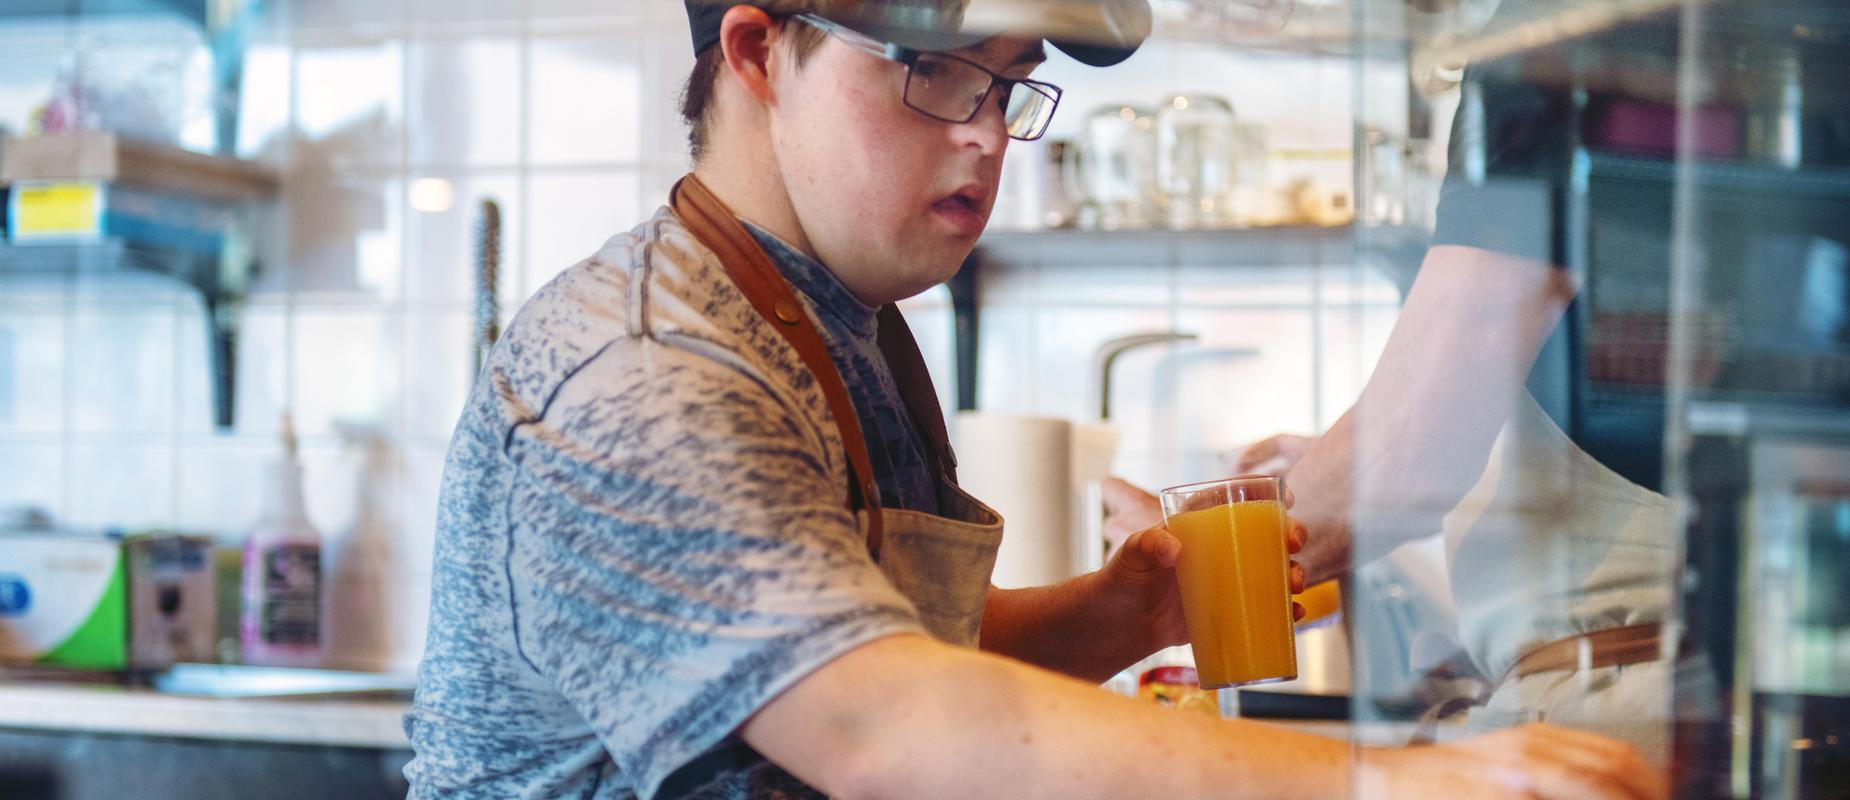 boy with Down's Syndrome working in a coffee shop